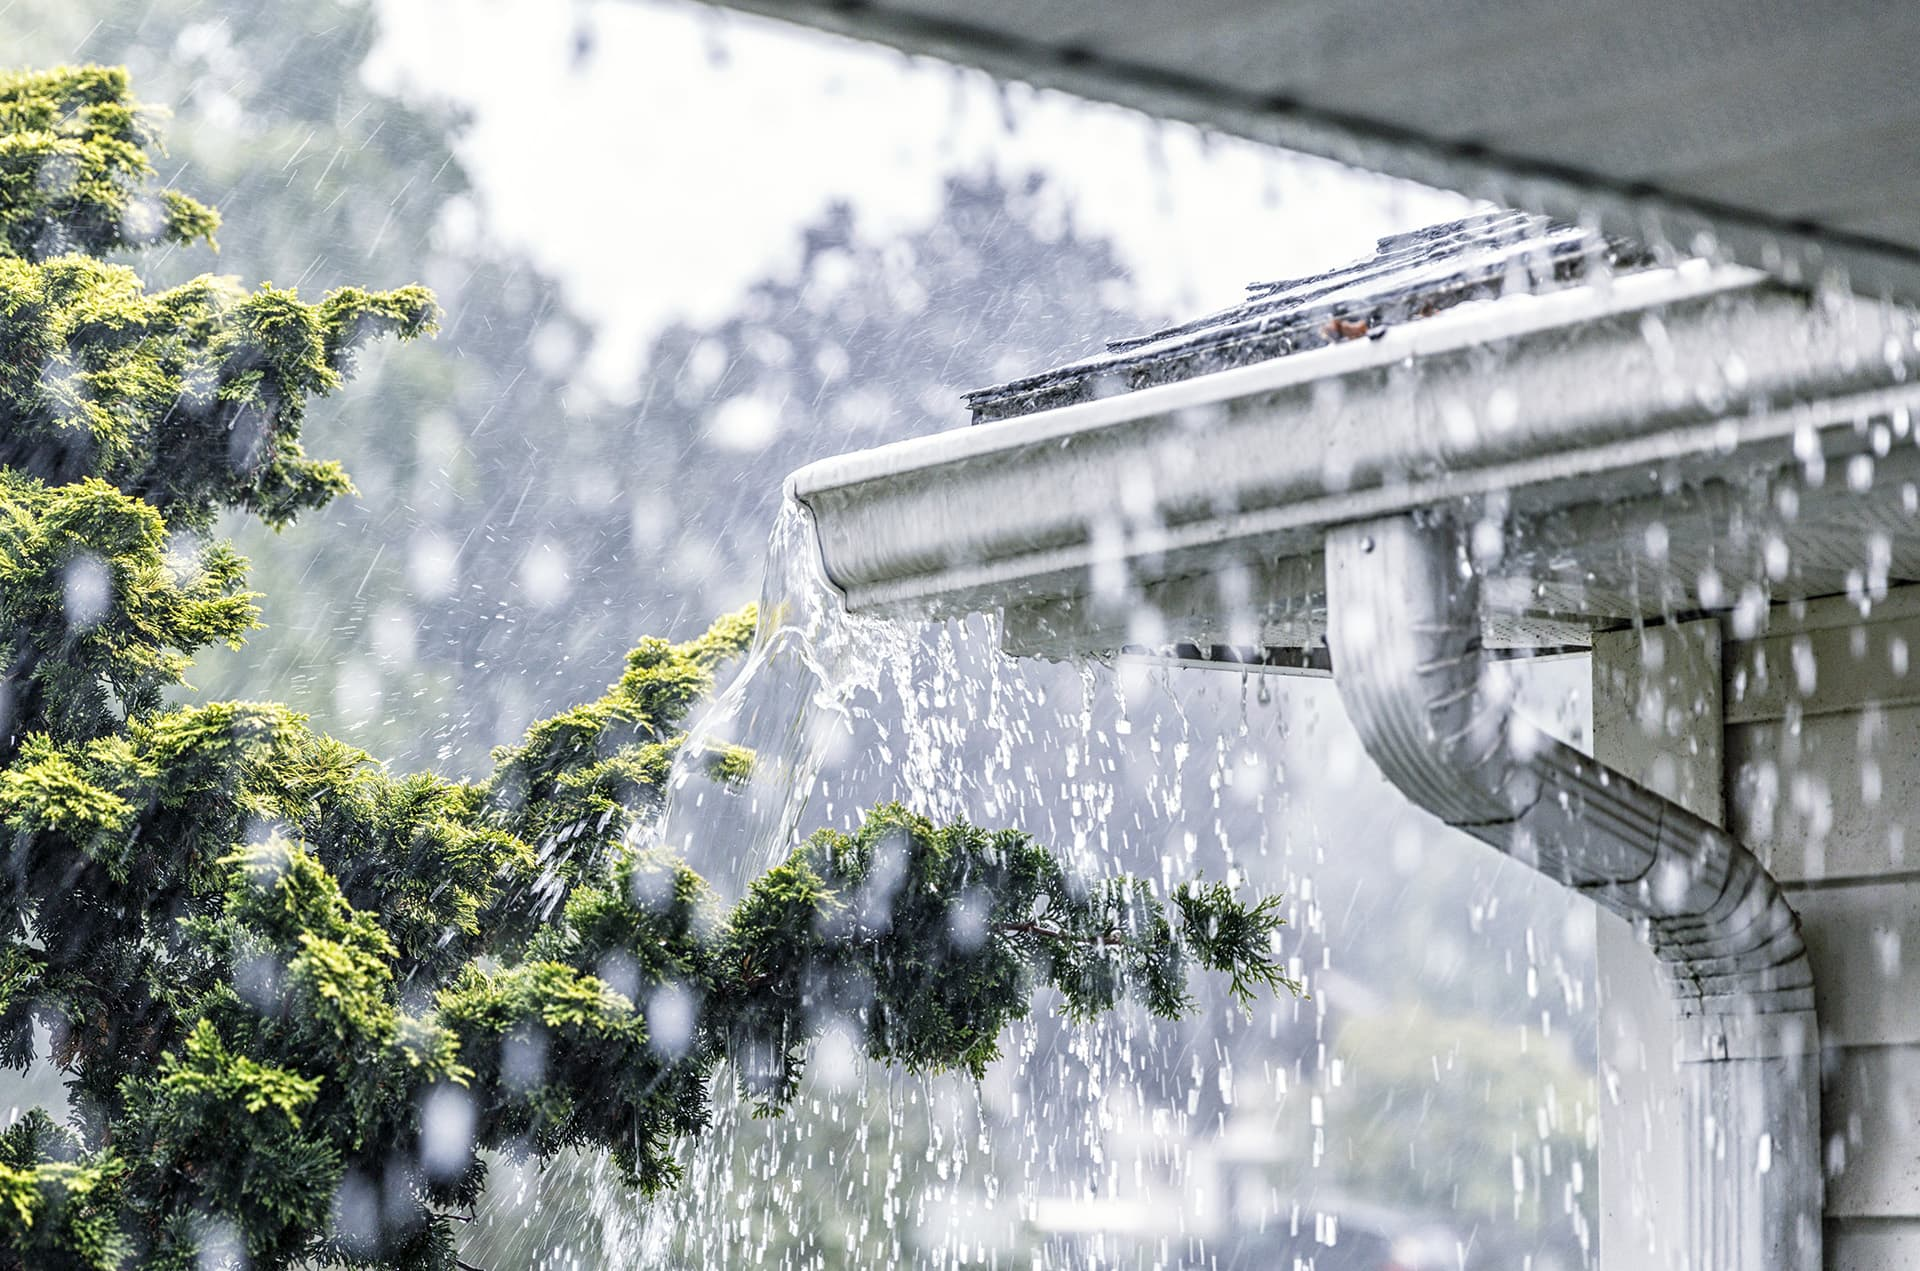 High risk home insurance for home that has an eavestrough overflowing with rain water